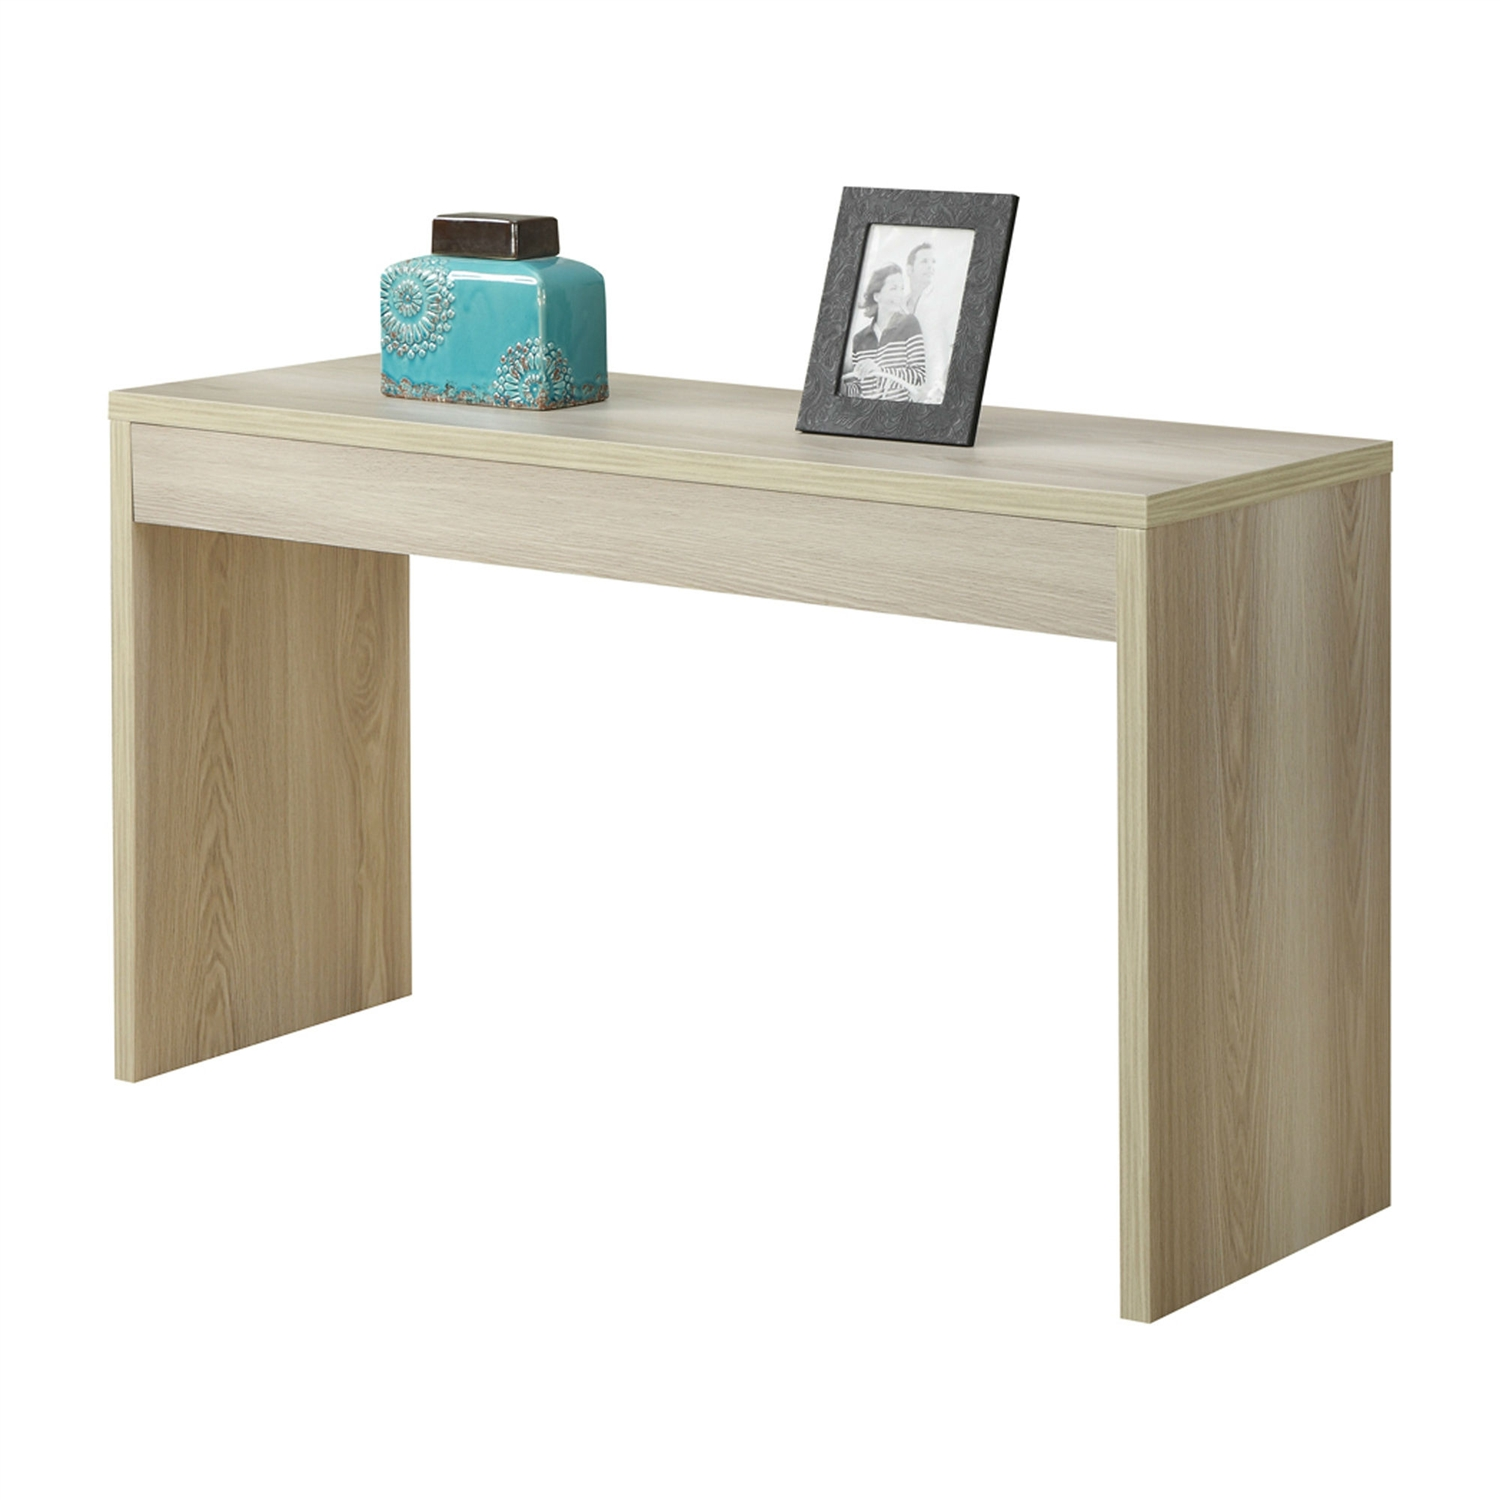 contemporary sofa table console table in weathered white wood  - retail price